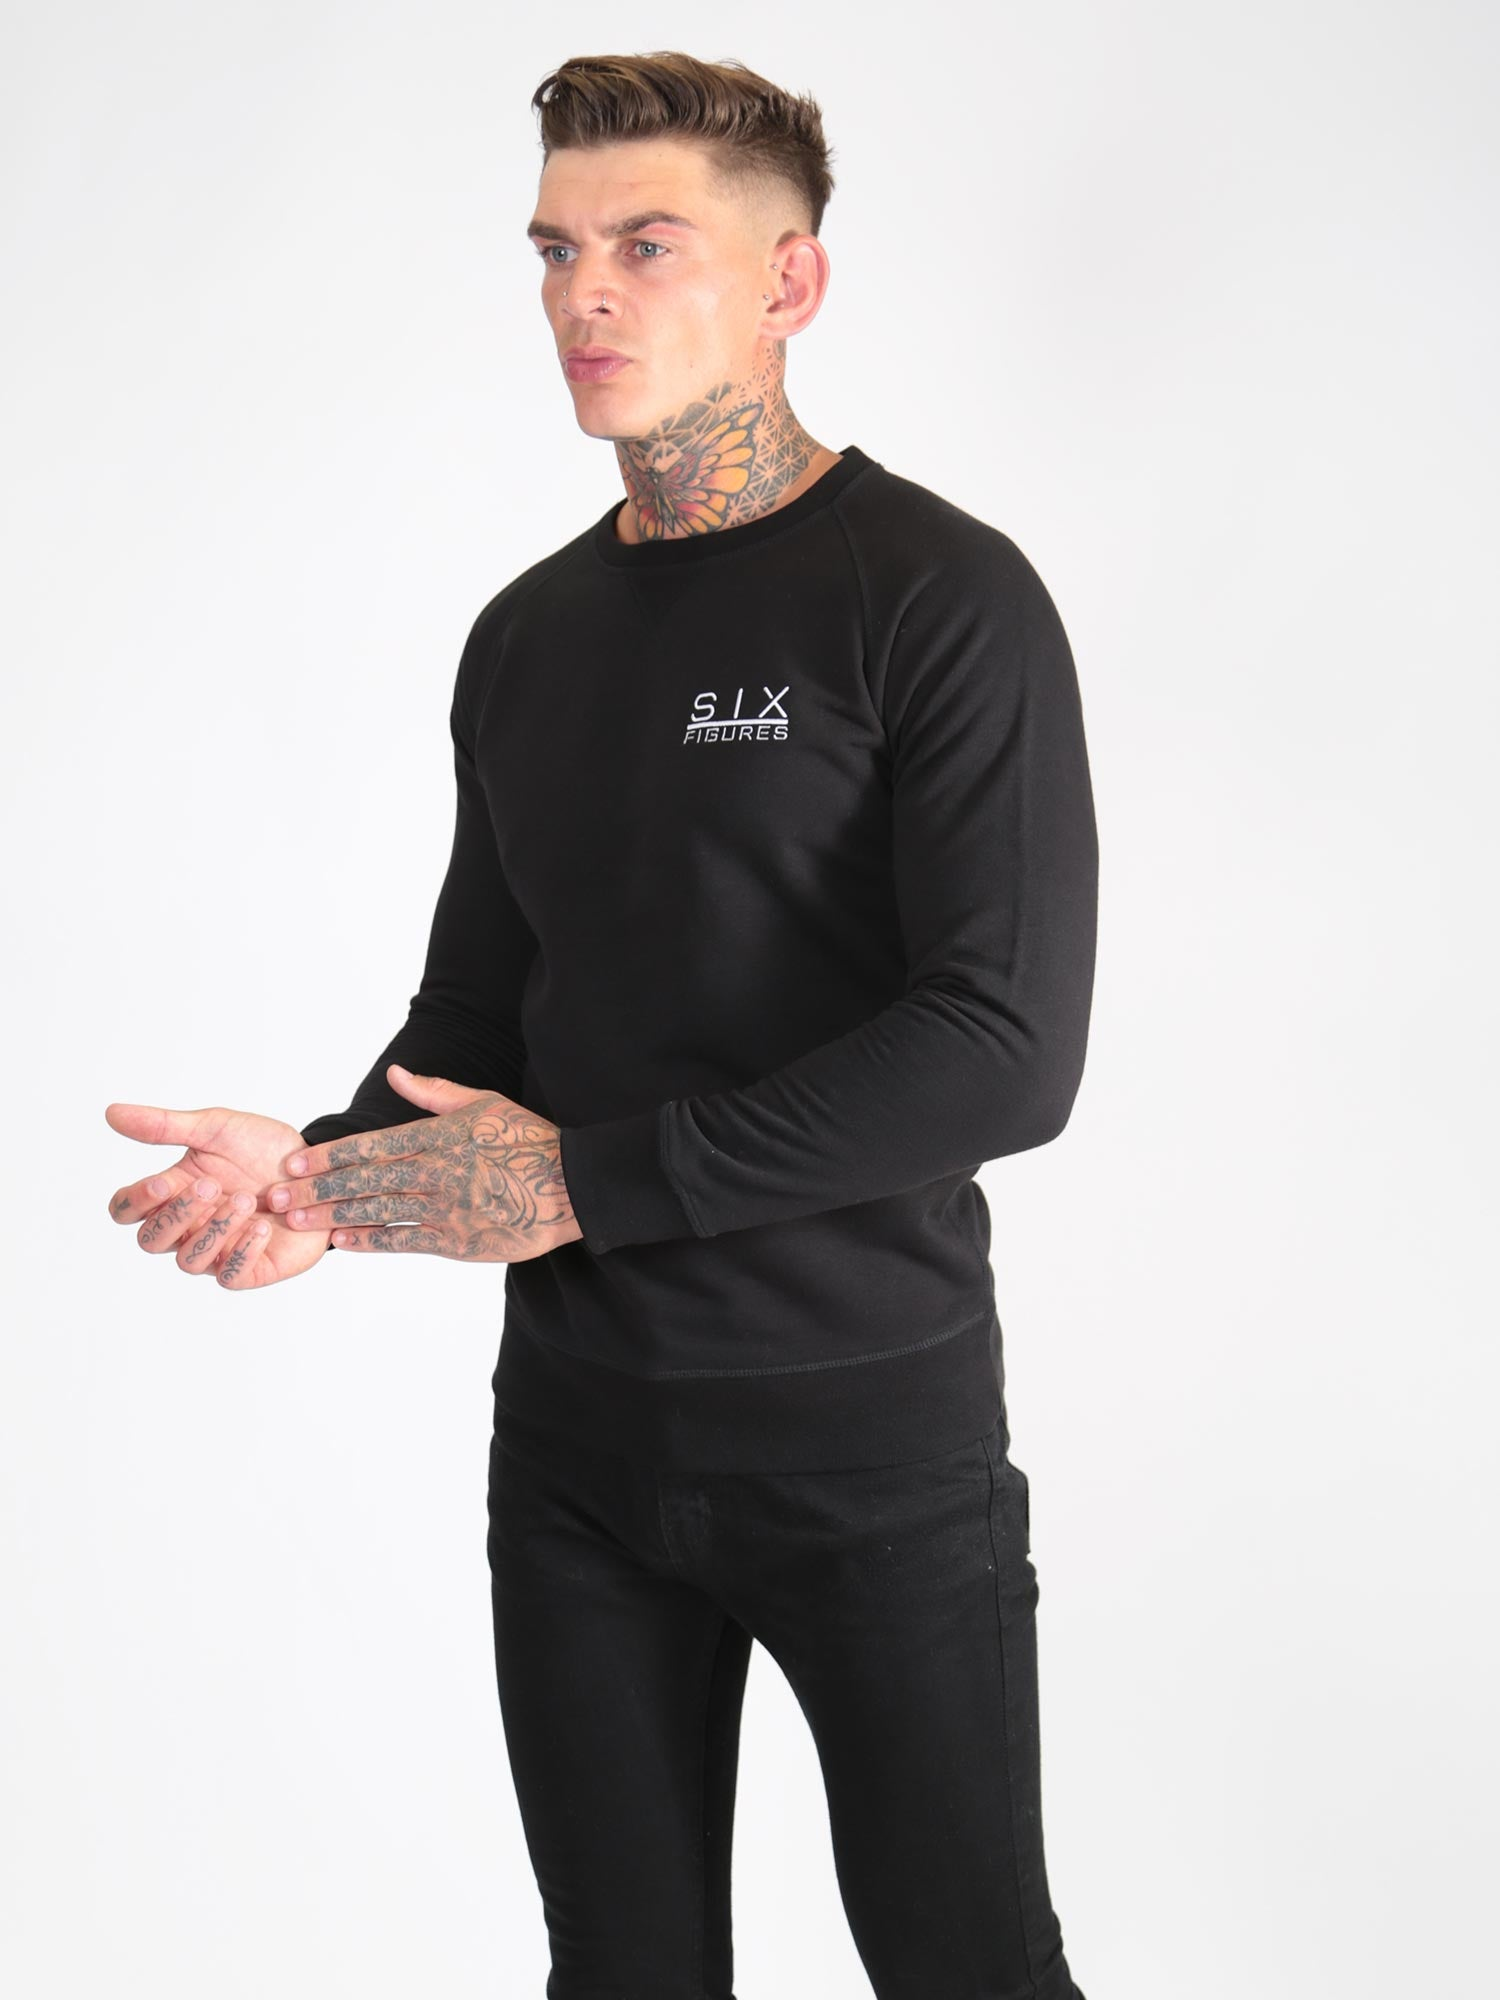 'Six Figures' Logo Sweatshirt - Black